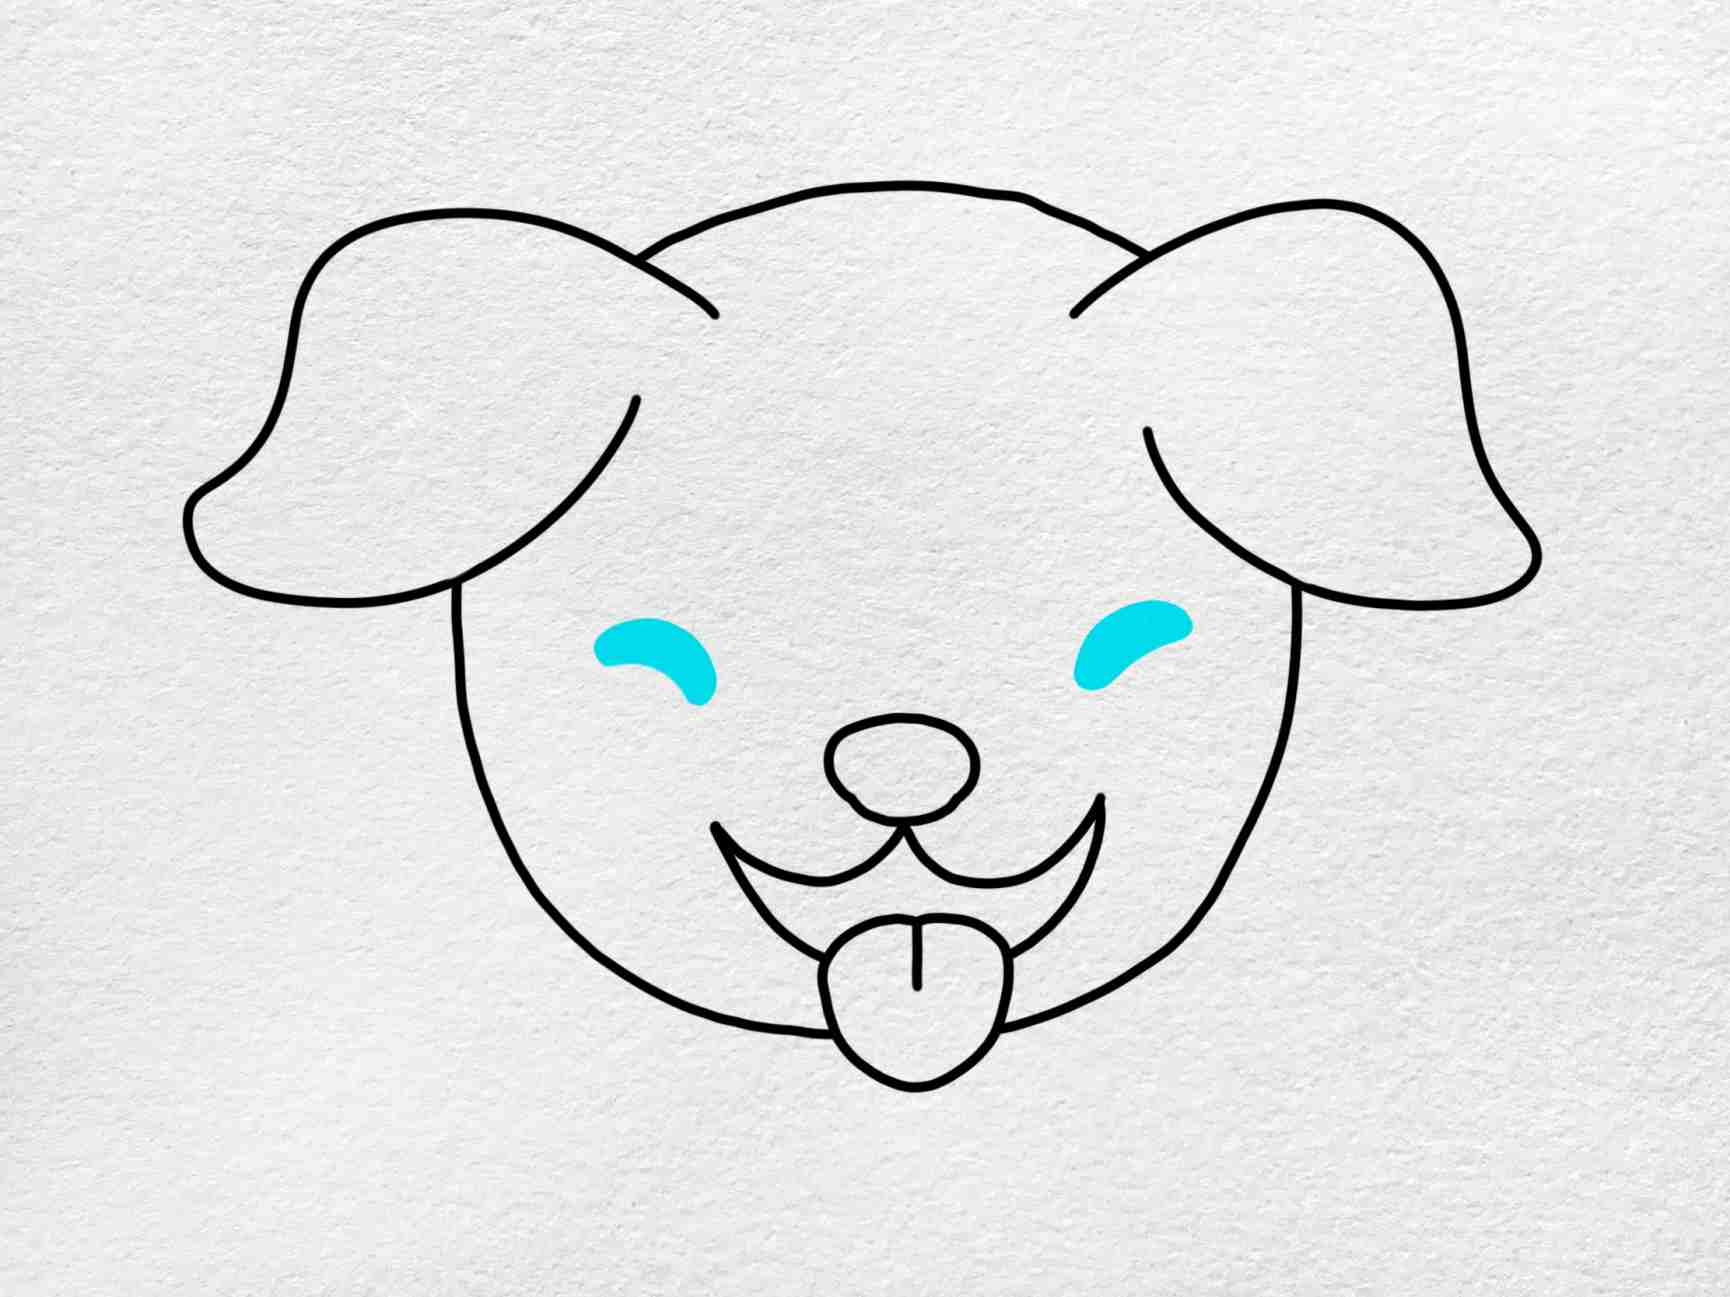 How To Draw A Dog Face: Step 5